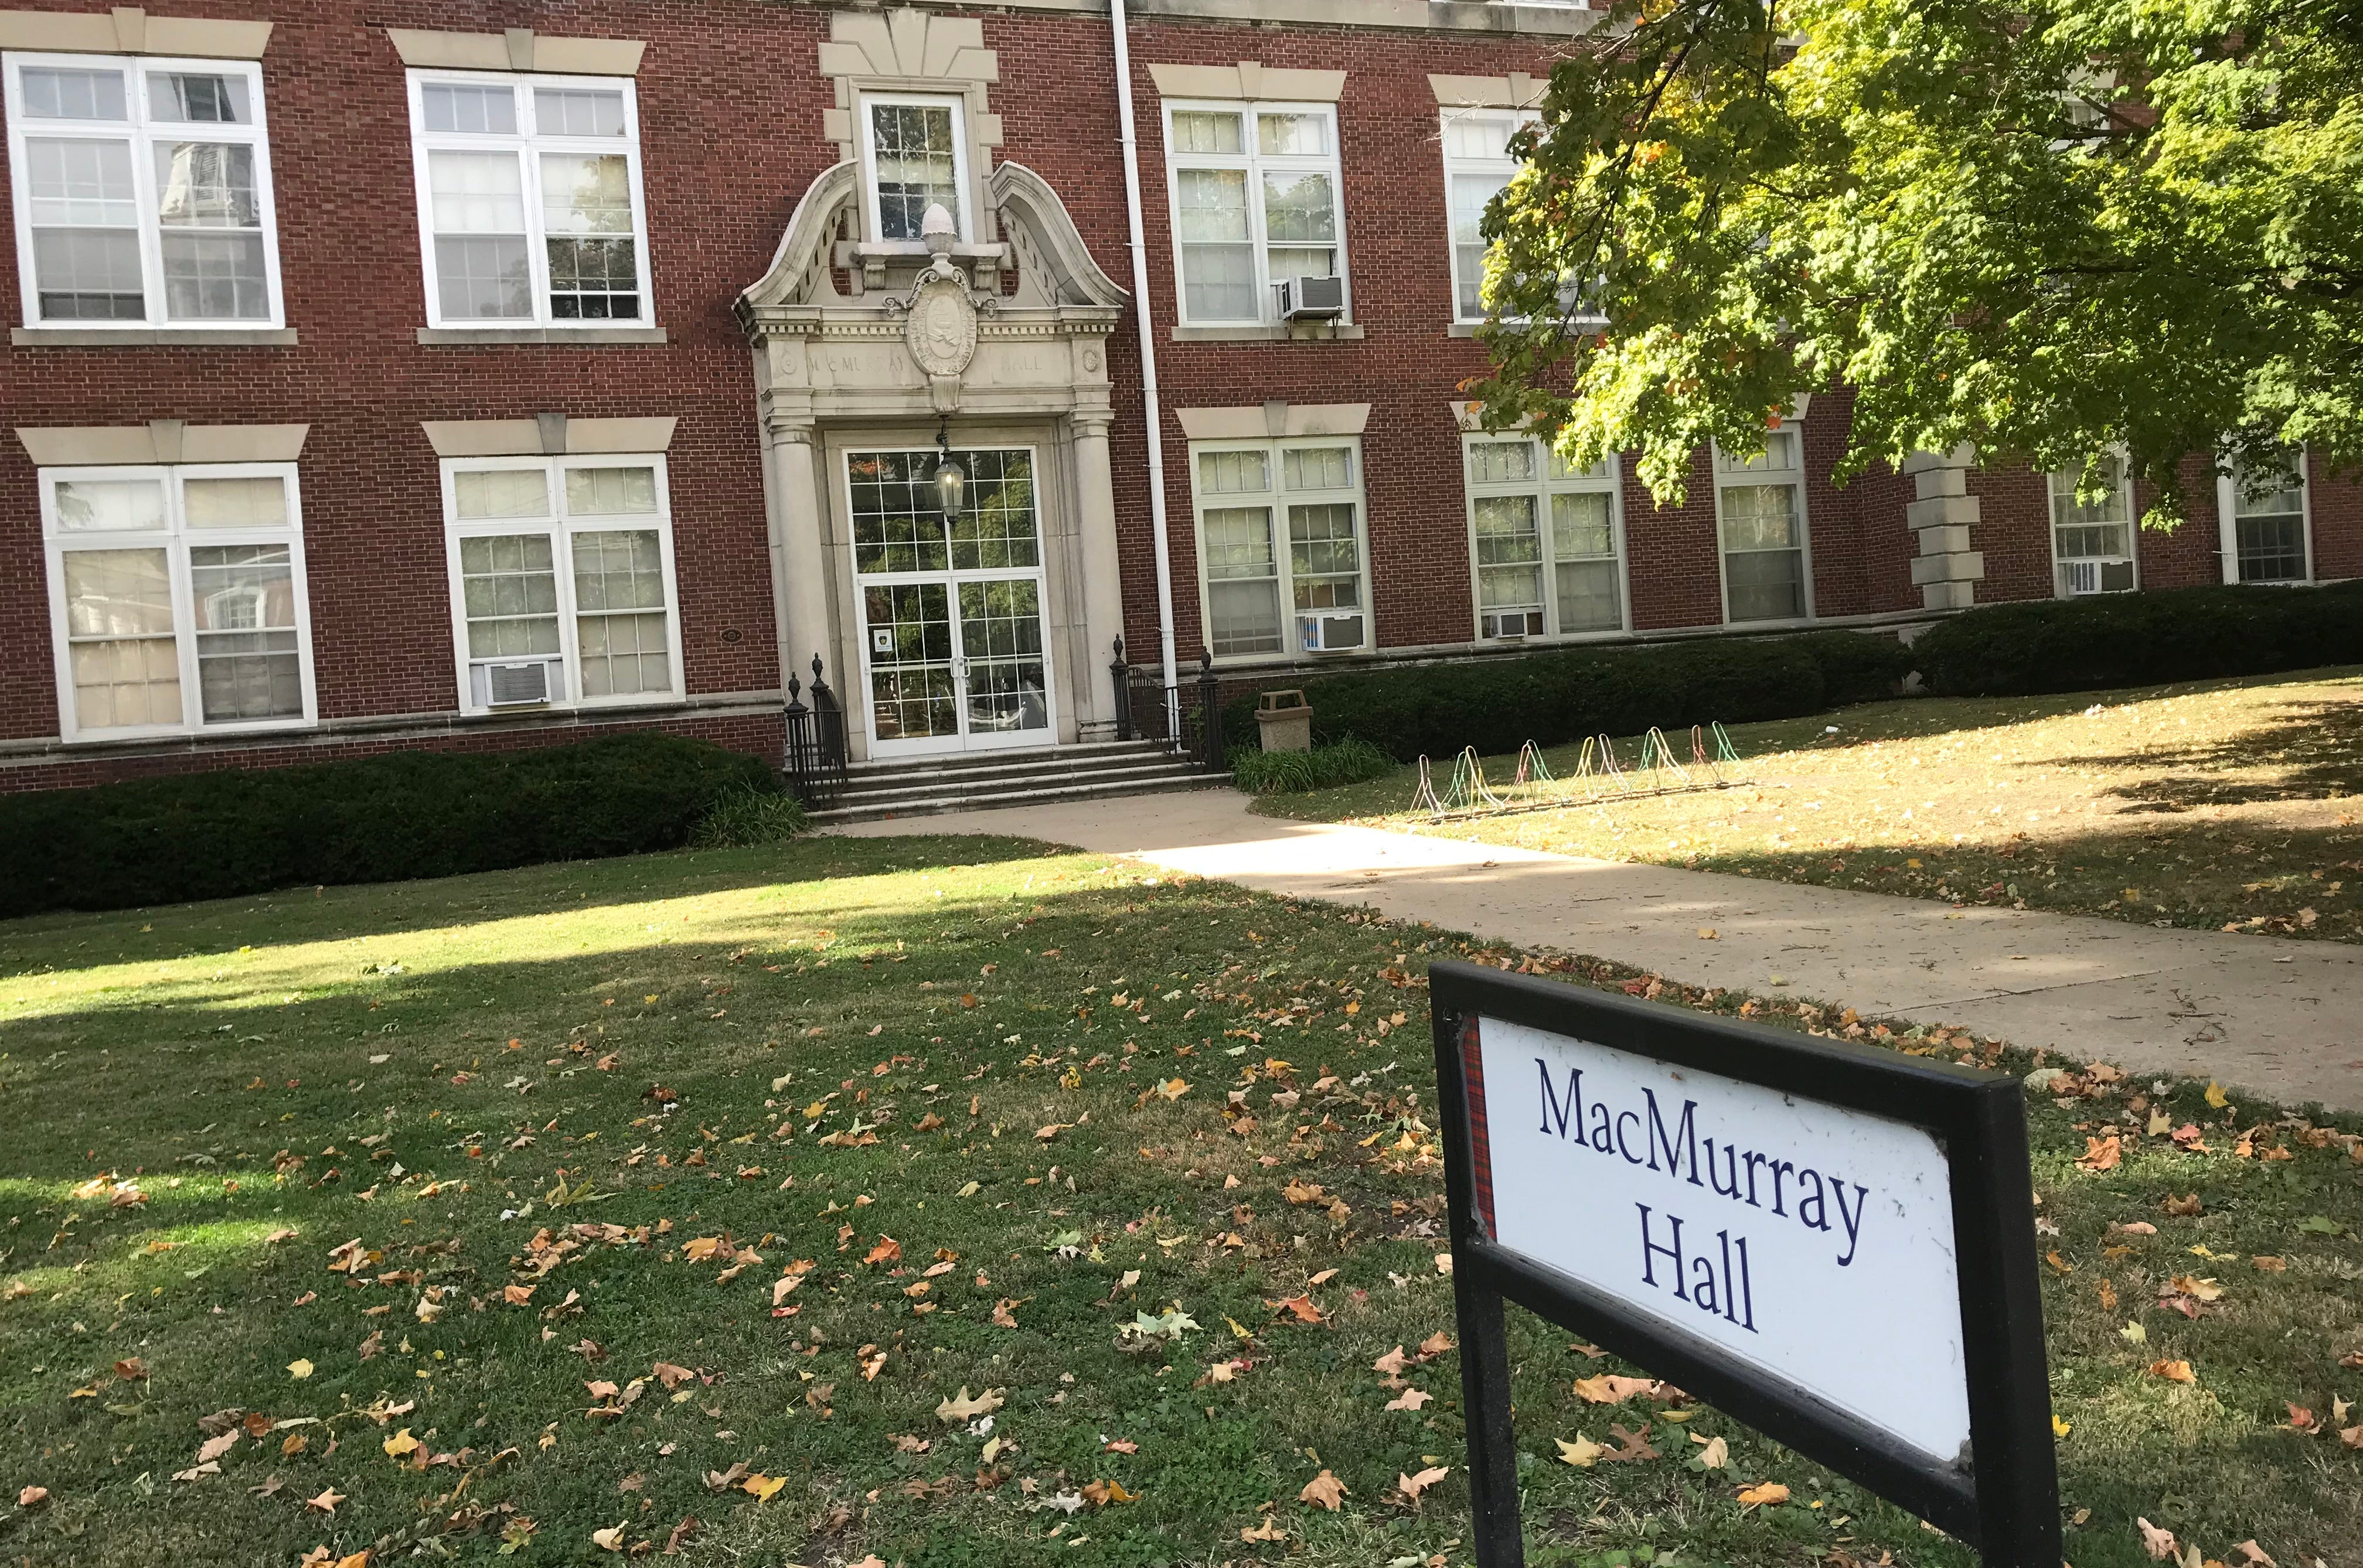 """MacMurray Hall was dedicated on commencement day in 1928 and Jane Addams, the """"Mother of Social Work,"""" delivered her speech """"Efforts Toward World Peace"""" at the event, according to the MacMurray College web site."""